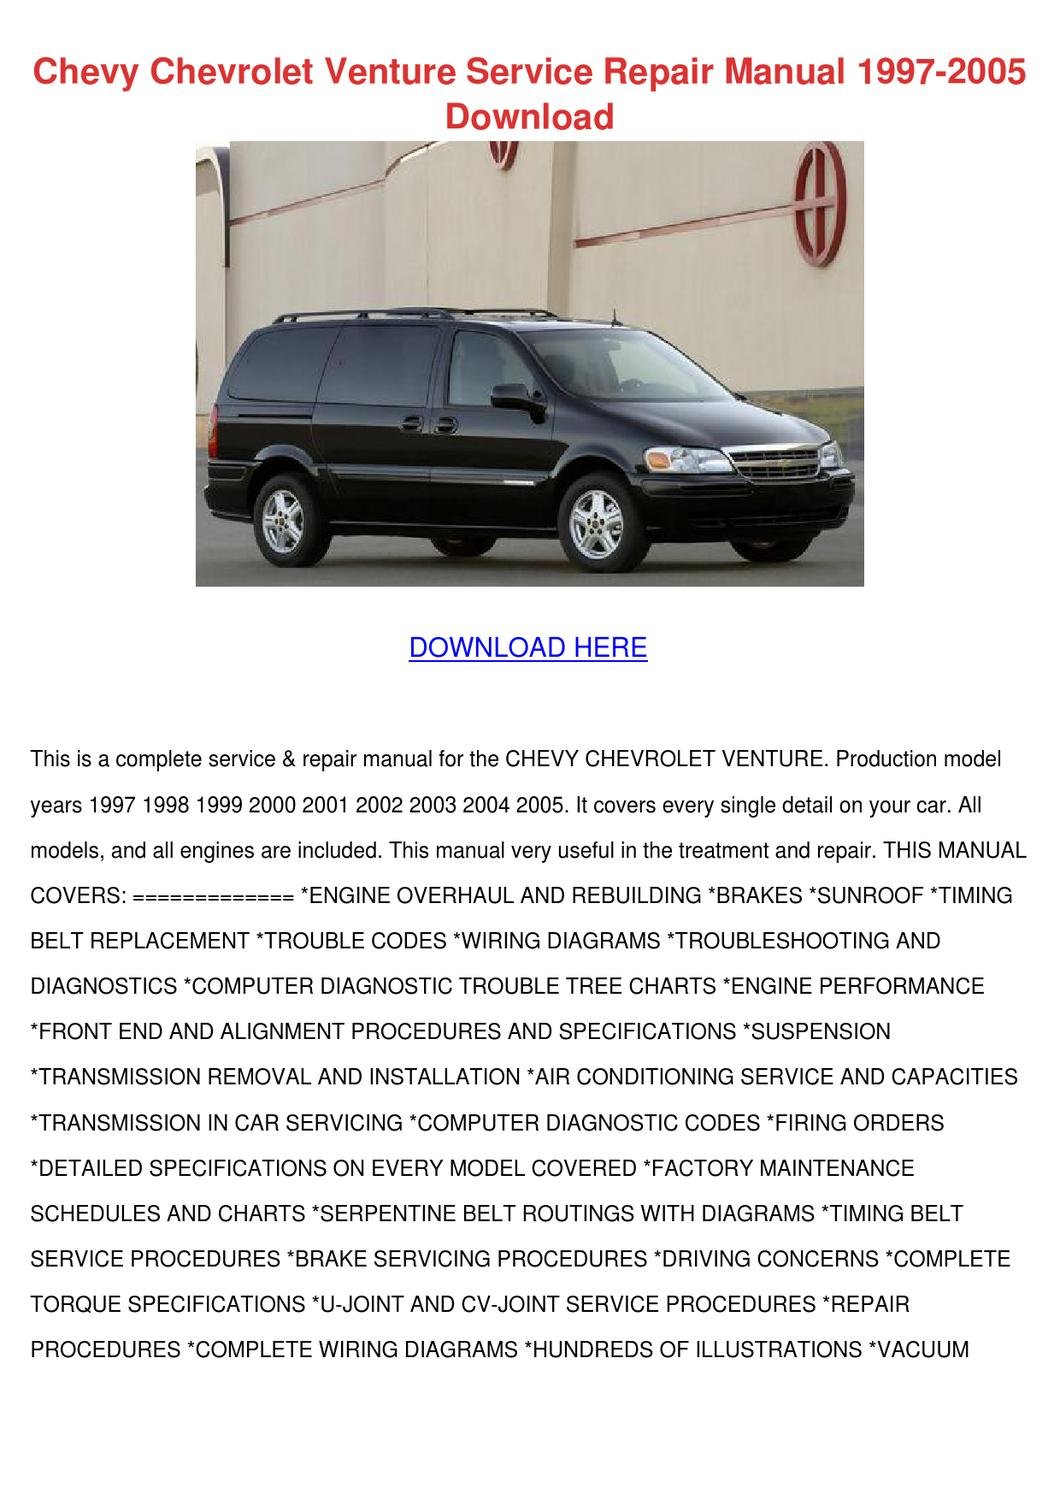 Chevy Chevrolet Venture Service Repair Manual By